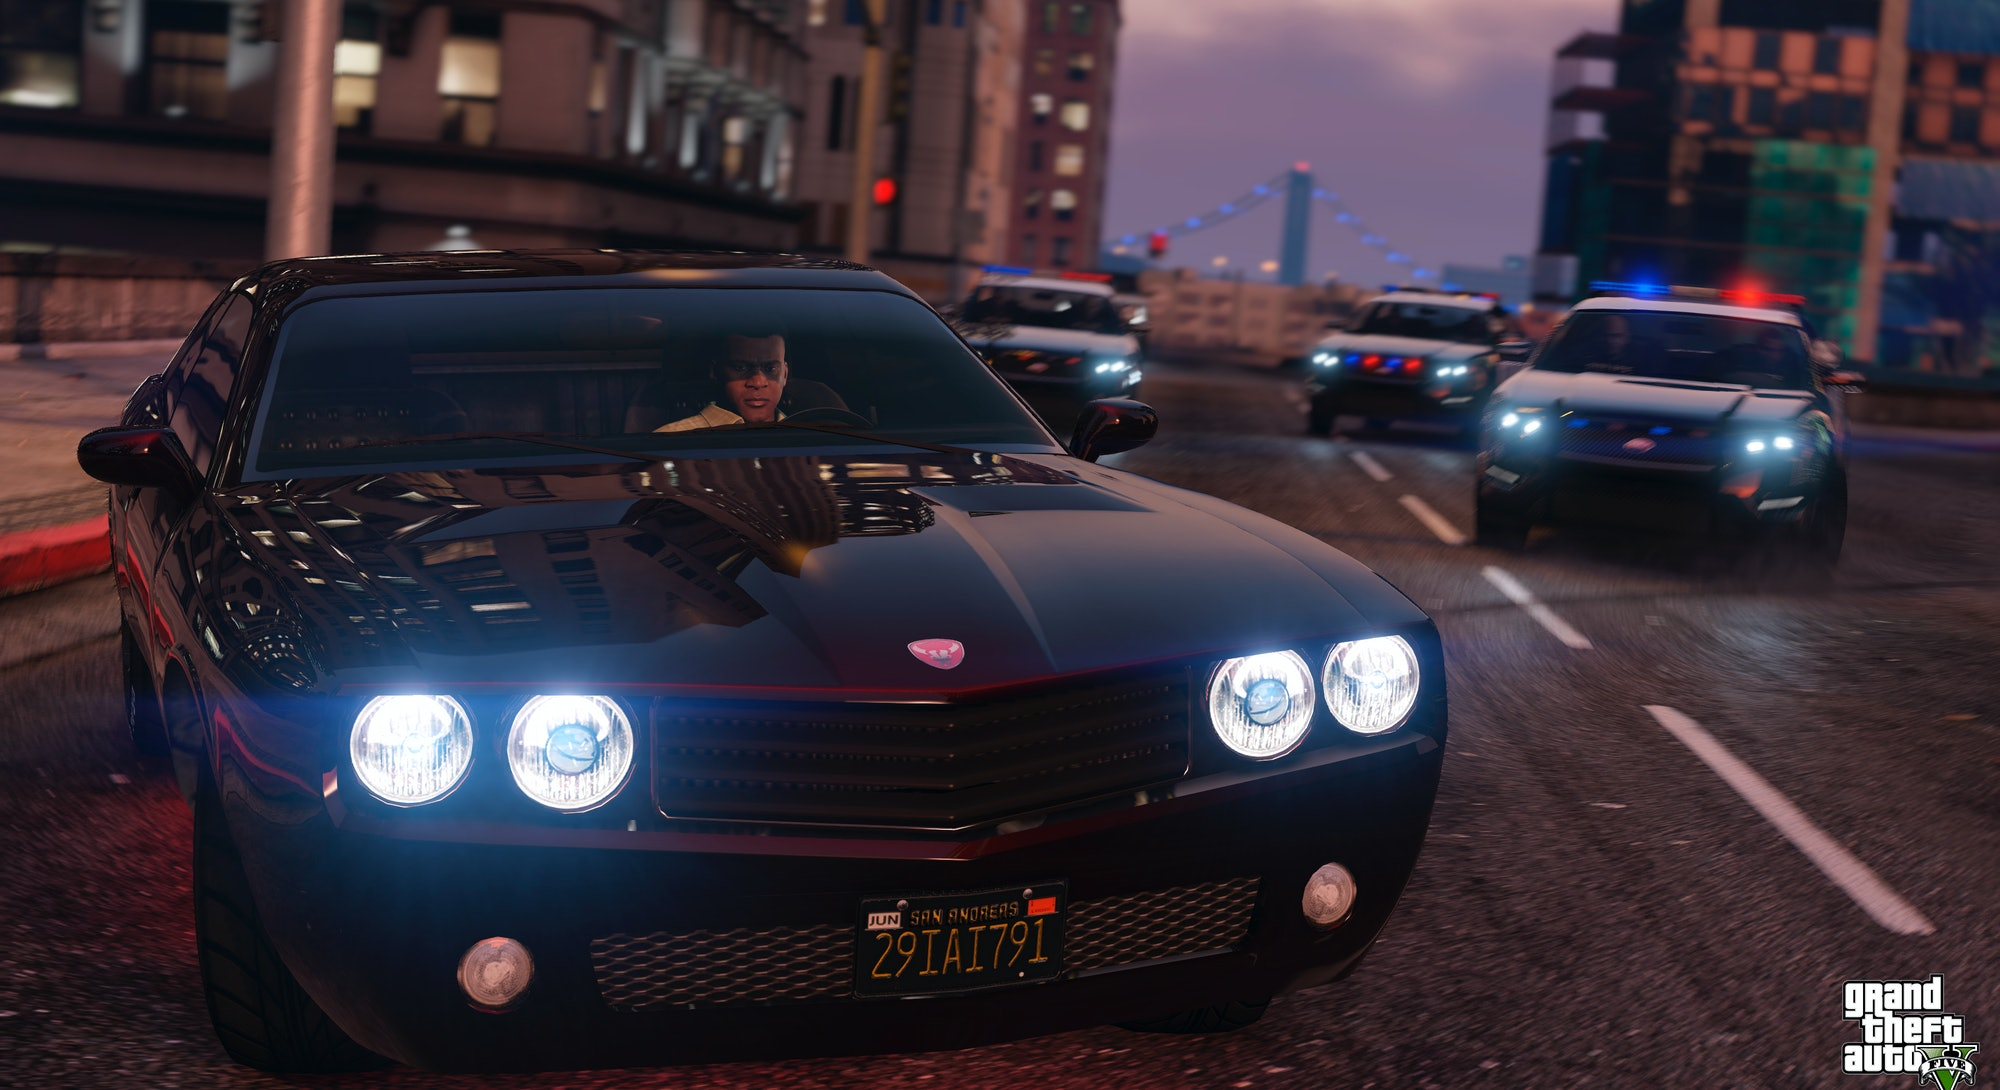 Screen shot from Grand Theft Auto V. GTA V. Video games. Games. Gaming.